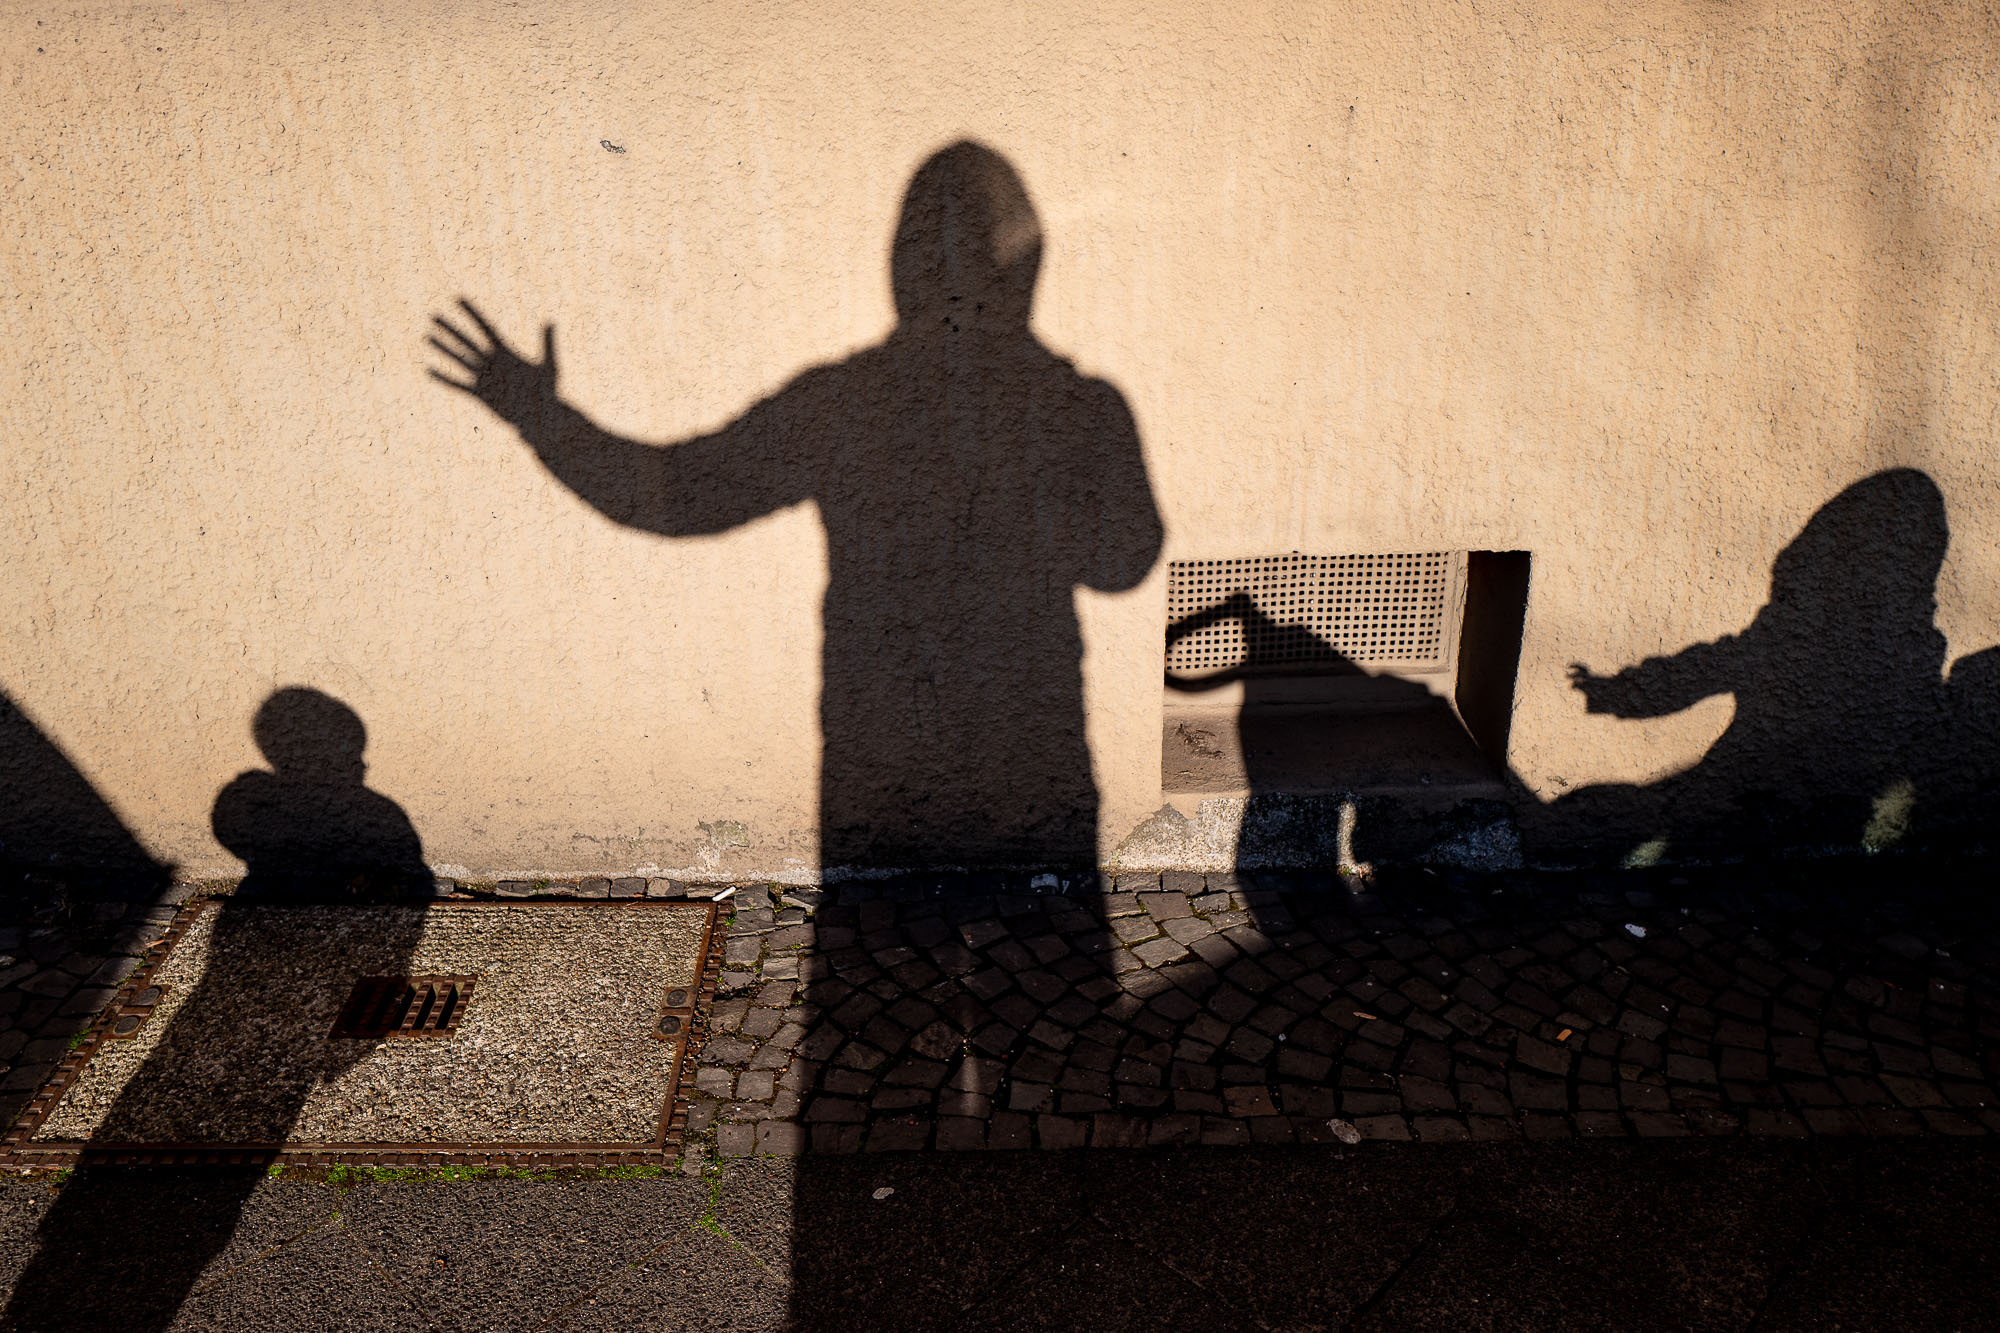 My children and I as shadows on a wall